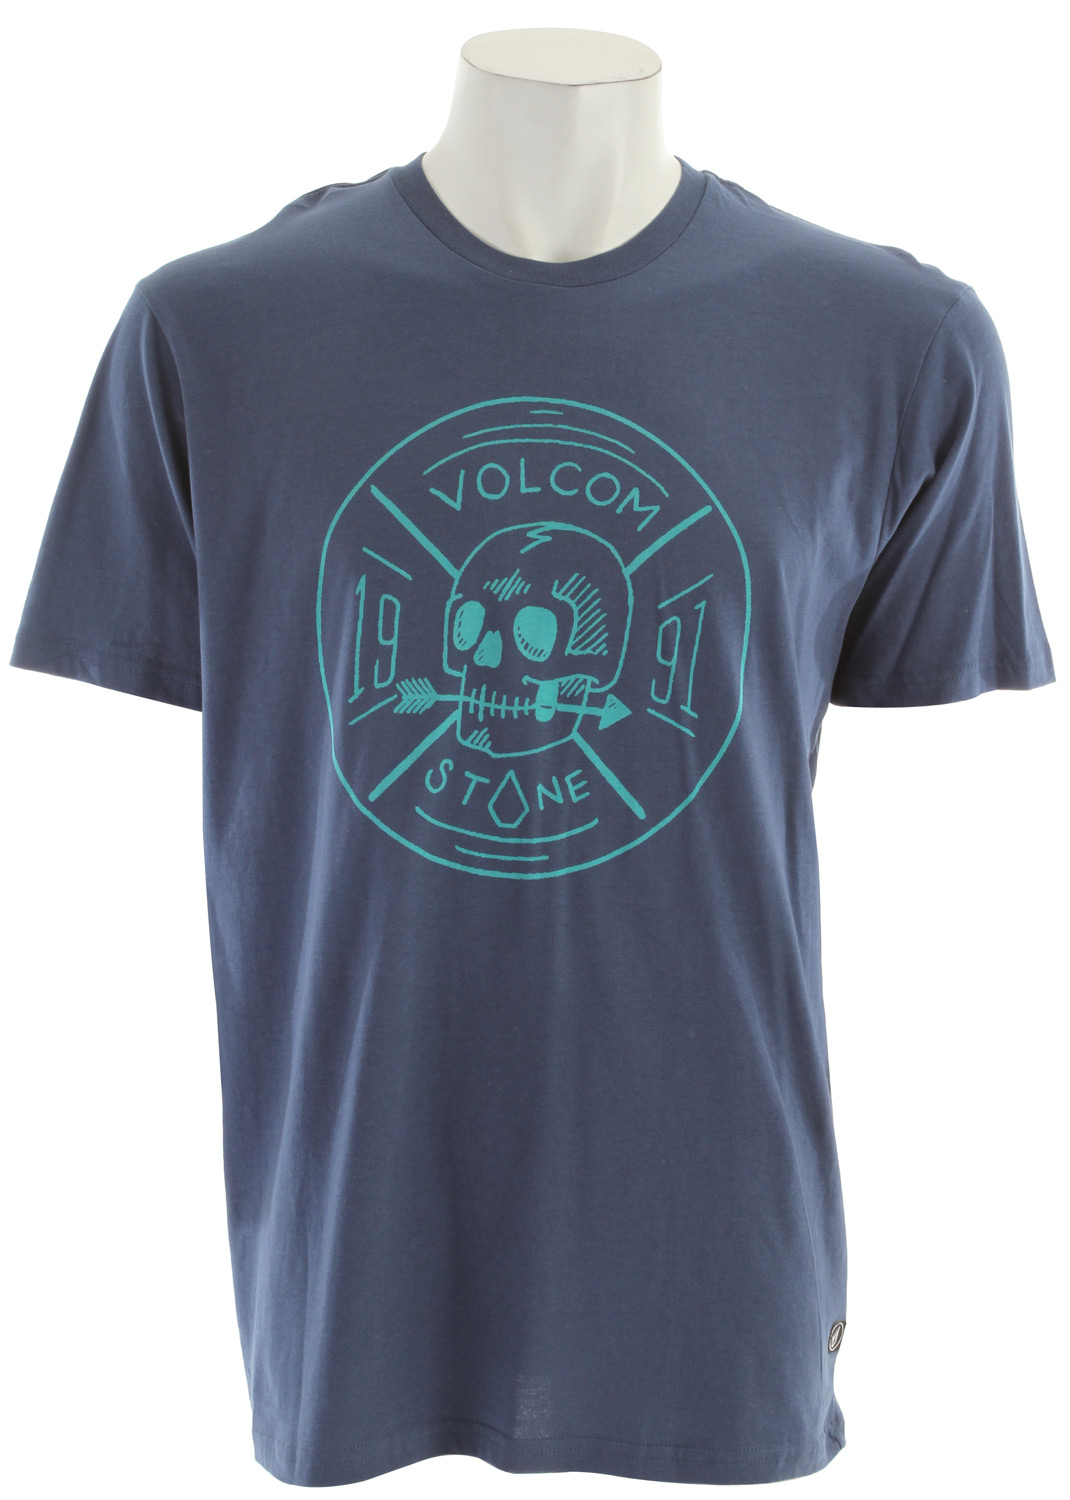 Surf Key Features of The Volcom Territorial T-Shirt: Regular Fit Crew Neck Short Sleeve Basic screenprint Contrast neck tape Modern Fit 100% Organic Cotton - $12.95